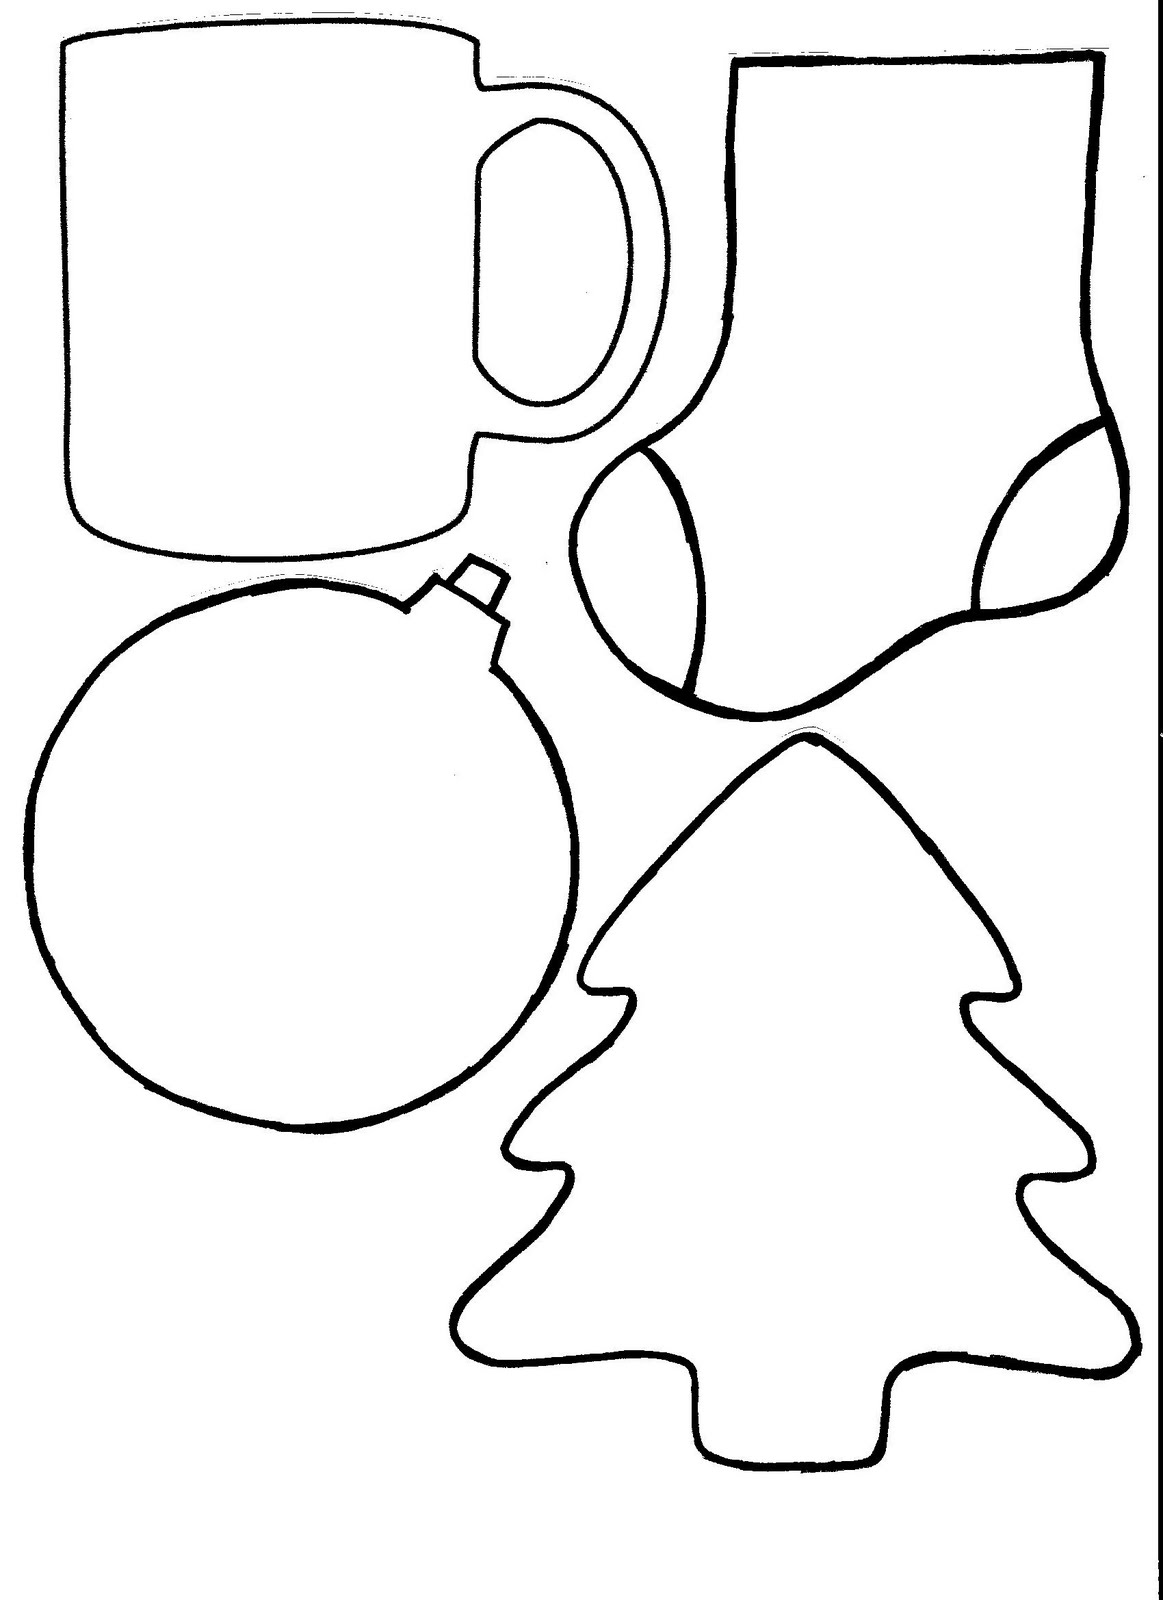 Clean image intended for printable ornament templates